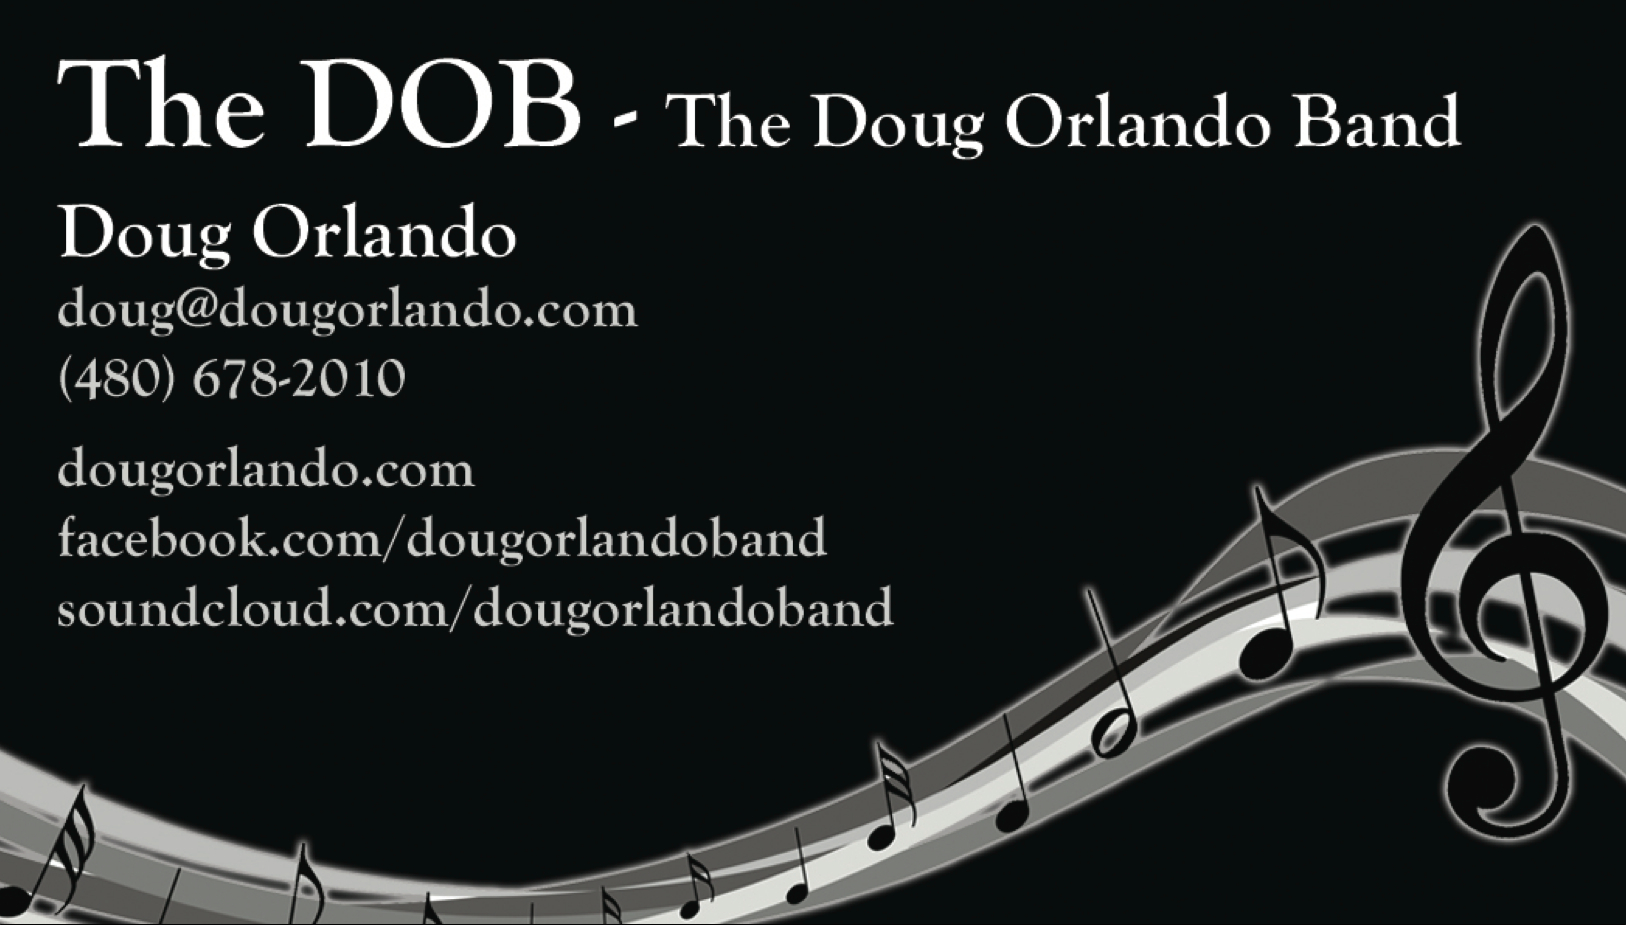 Doug Orlando Band DOB Card Front